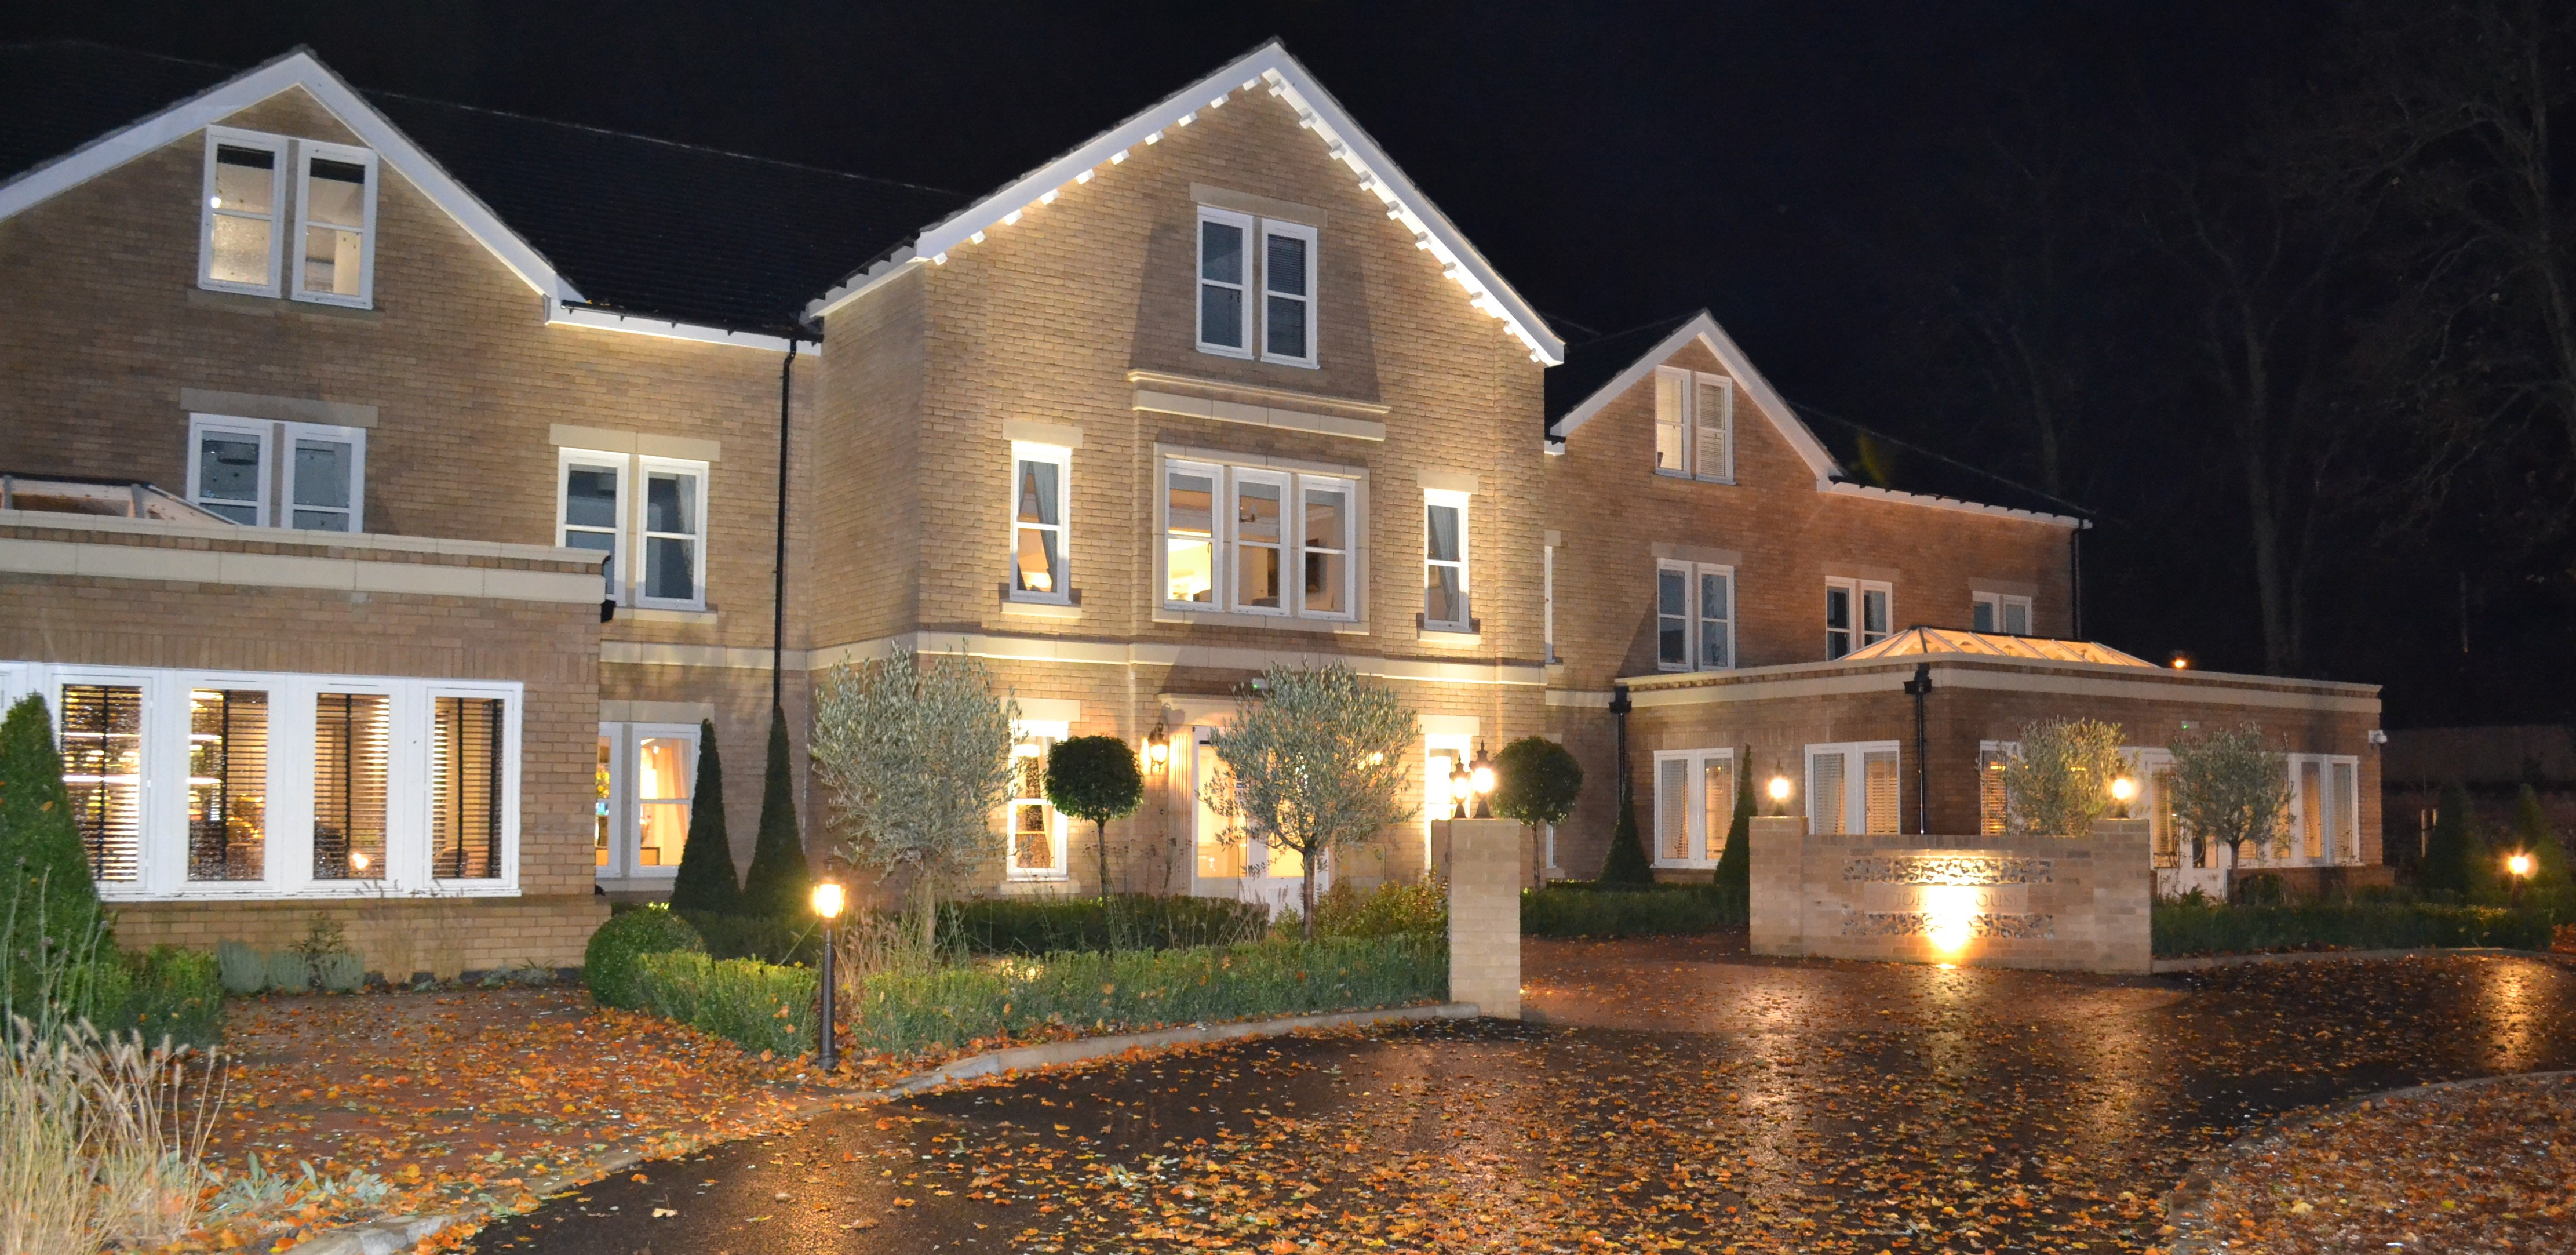 Raising The Bar On Five Star Care Home Design Rh Drivenbyhealth Co Uk Care  Home Signs Care Home Design Guide Uk